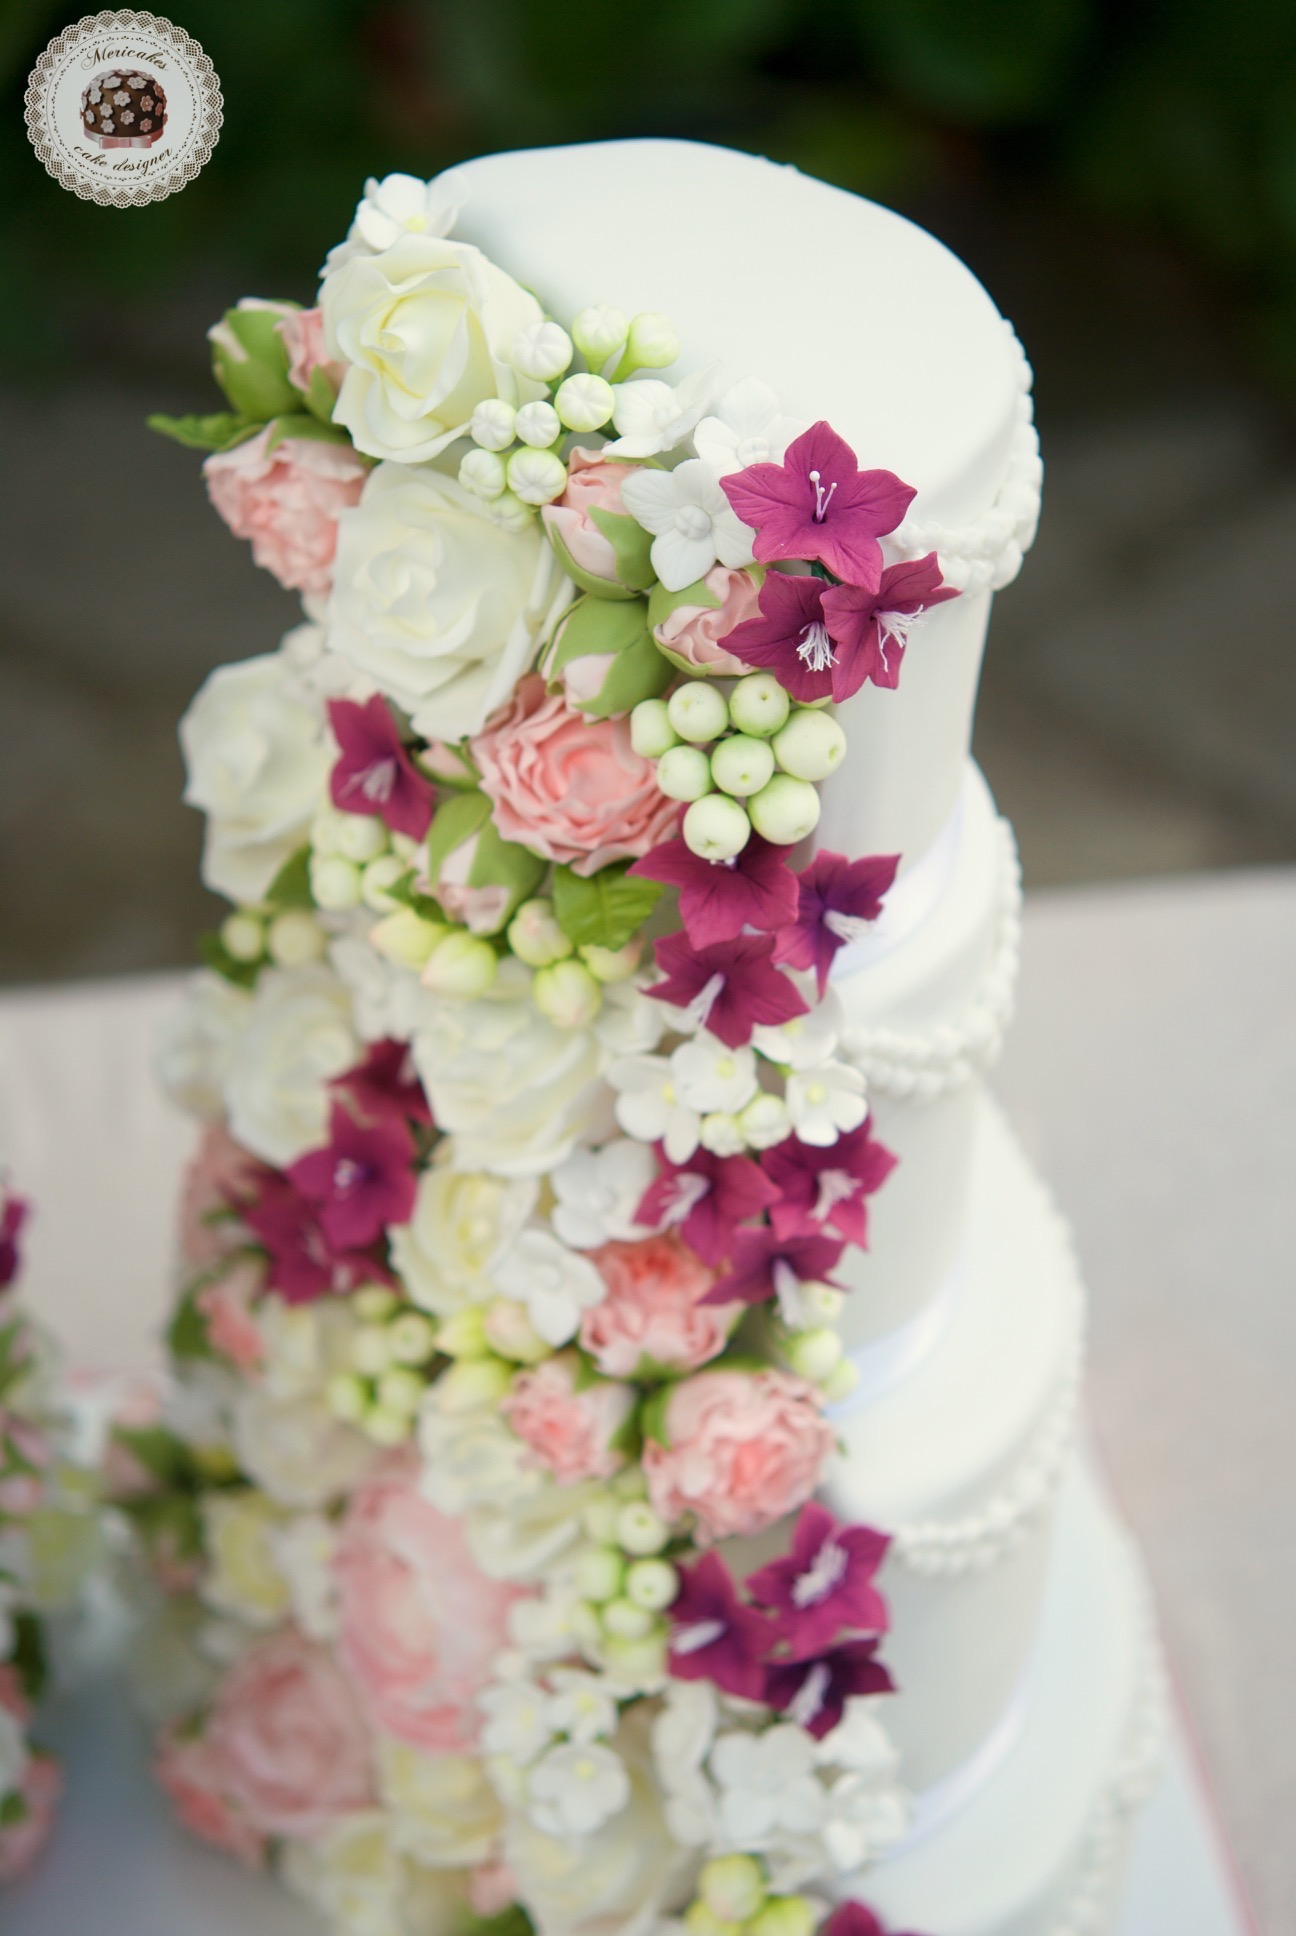 White wedding cake with sugar flower center